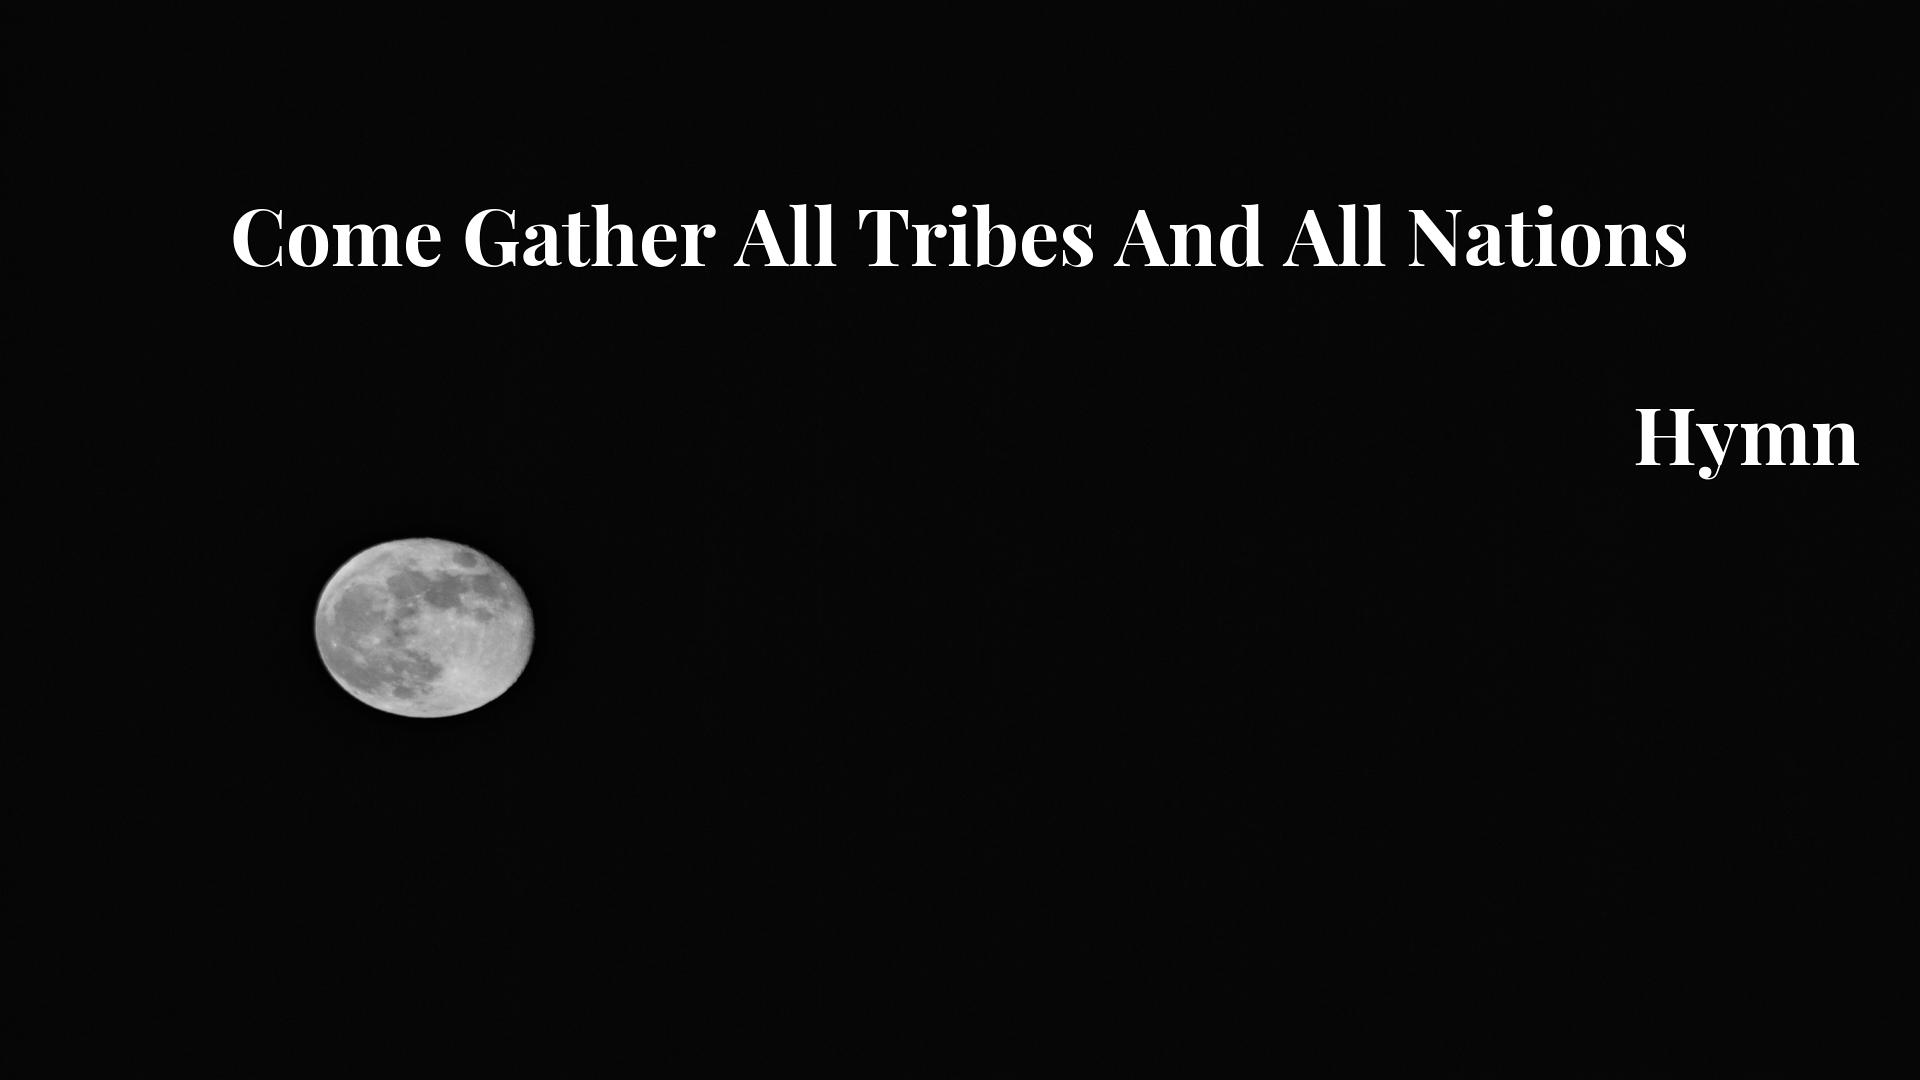 Come Gather All Tribes And All Nations - Hymn